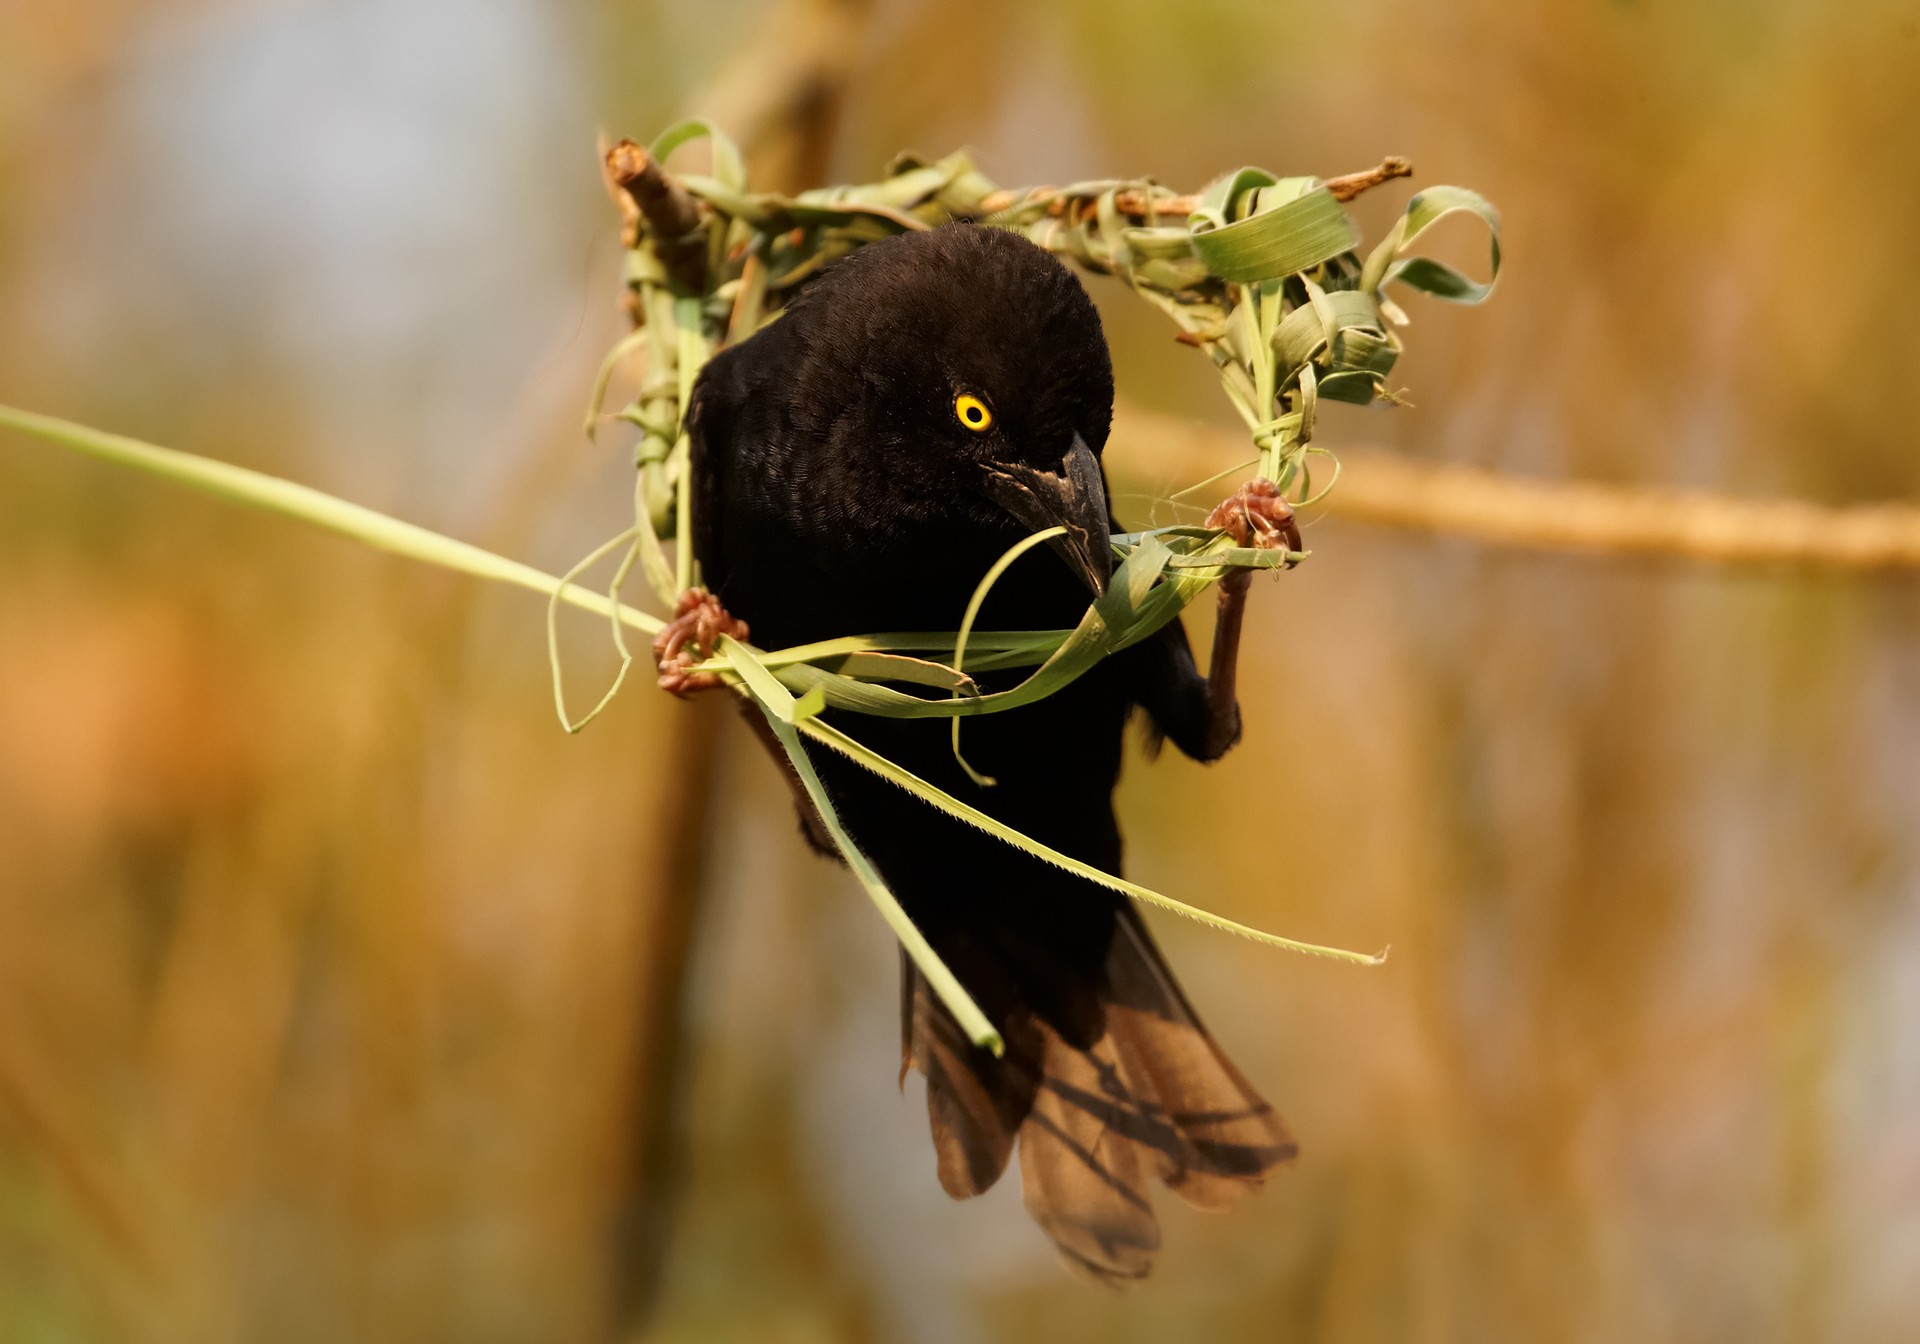 Vieillot's Black Weaver making nest in Uganda